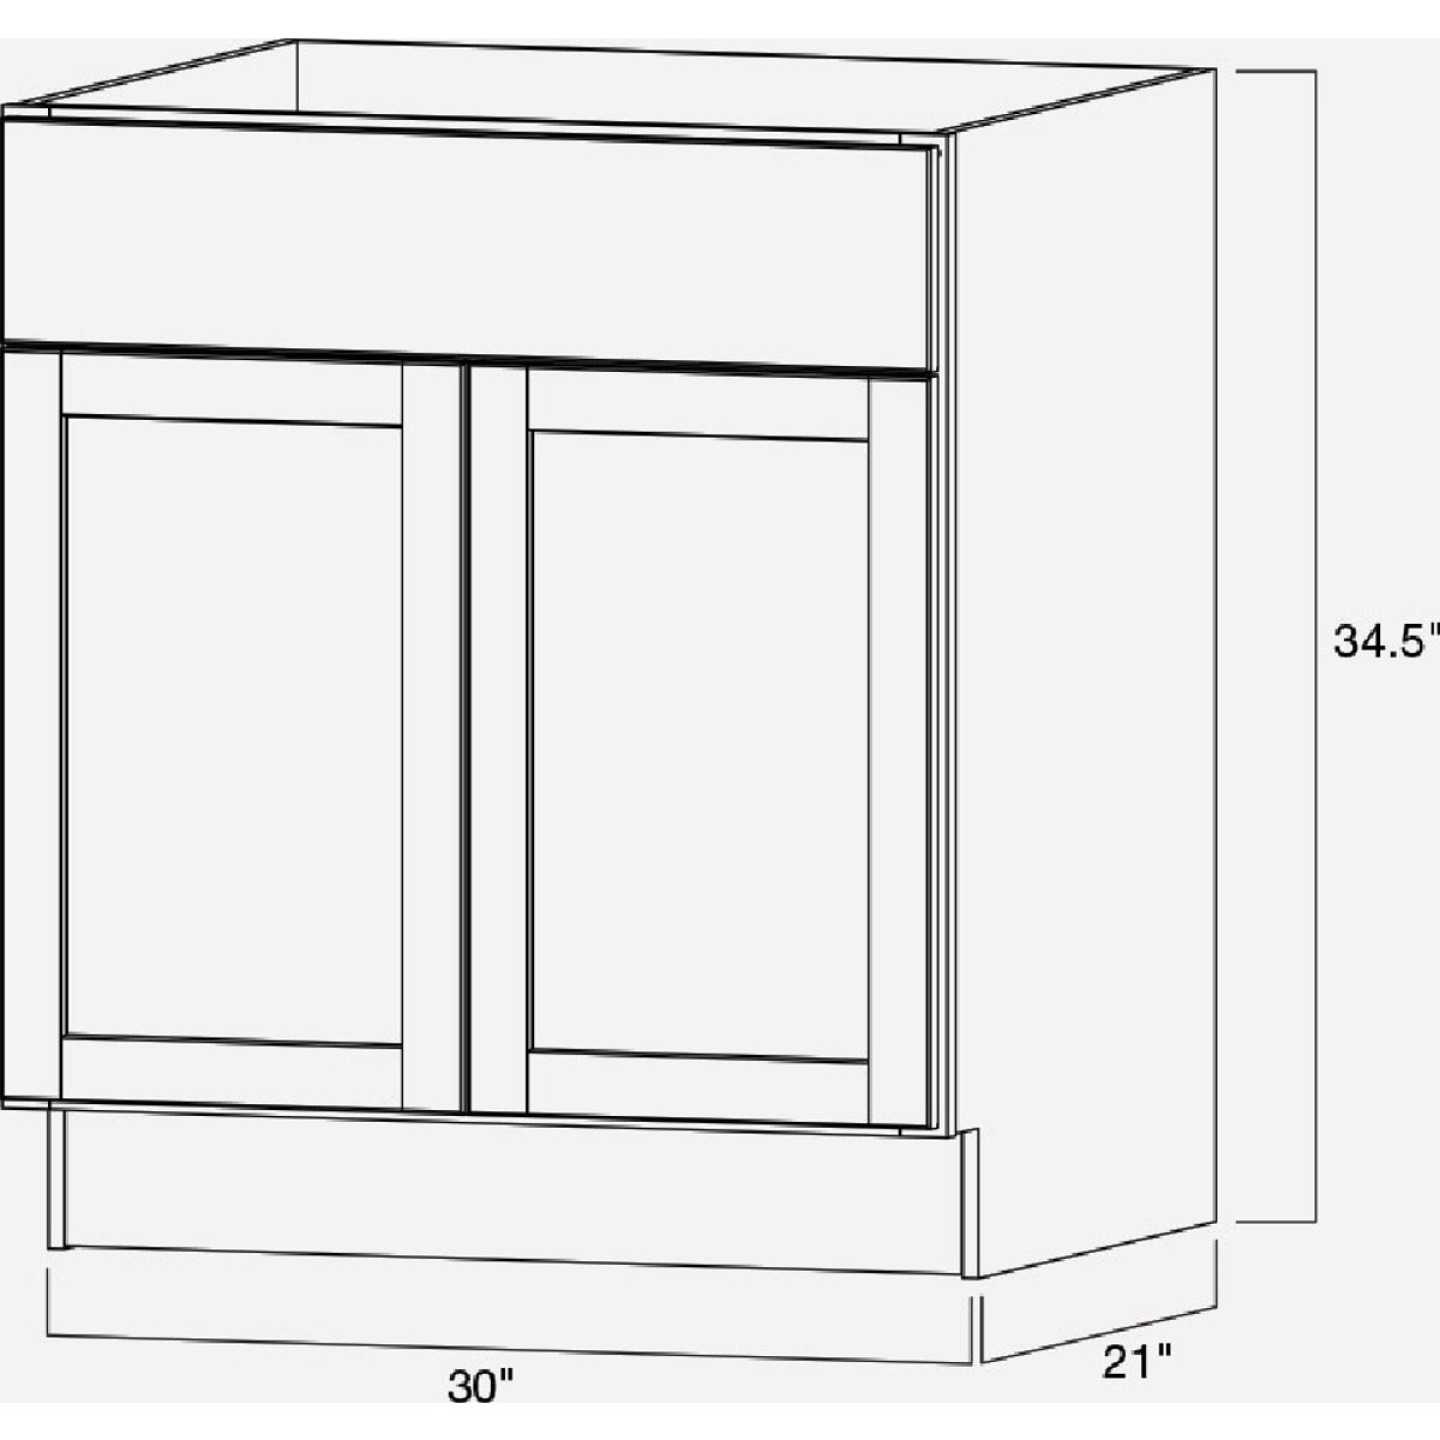 Continental Cabinets Andover Shaker 30 In. W x 34-1/2 In. H x 21 In. D White Vanity Base, 2 Door Image 5